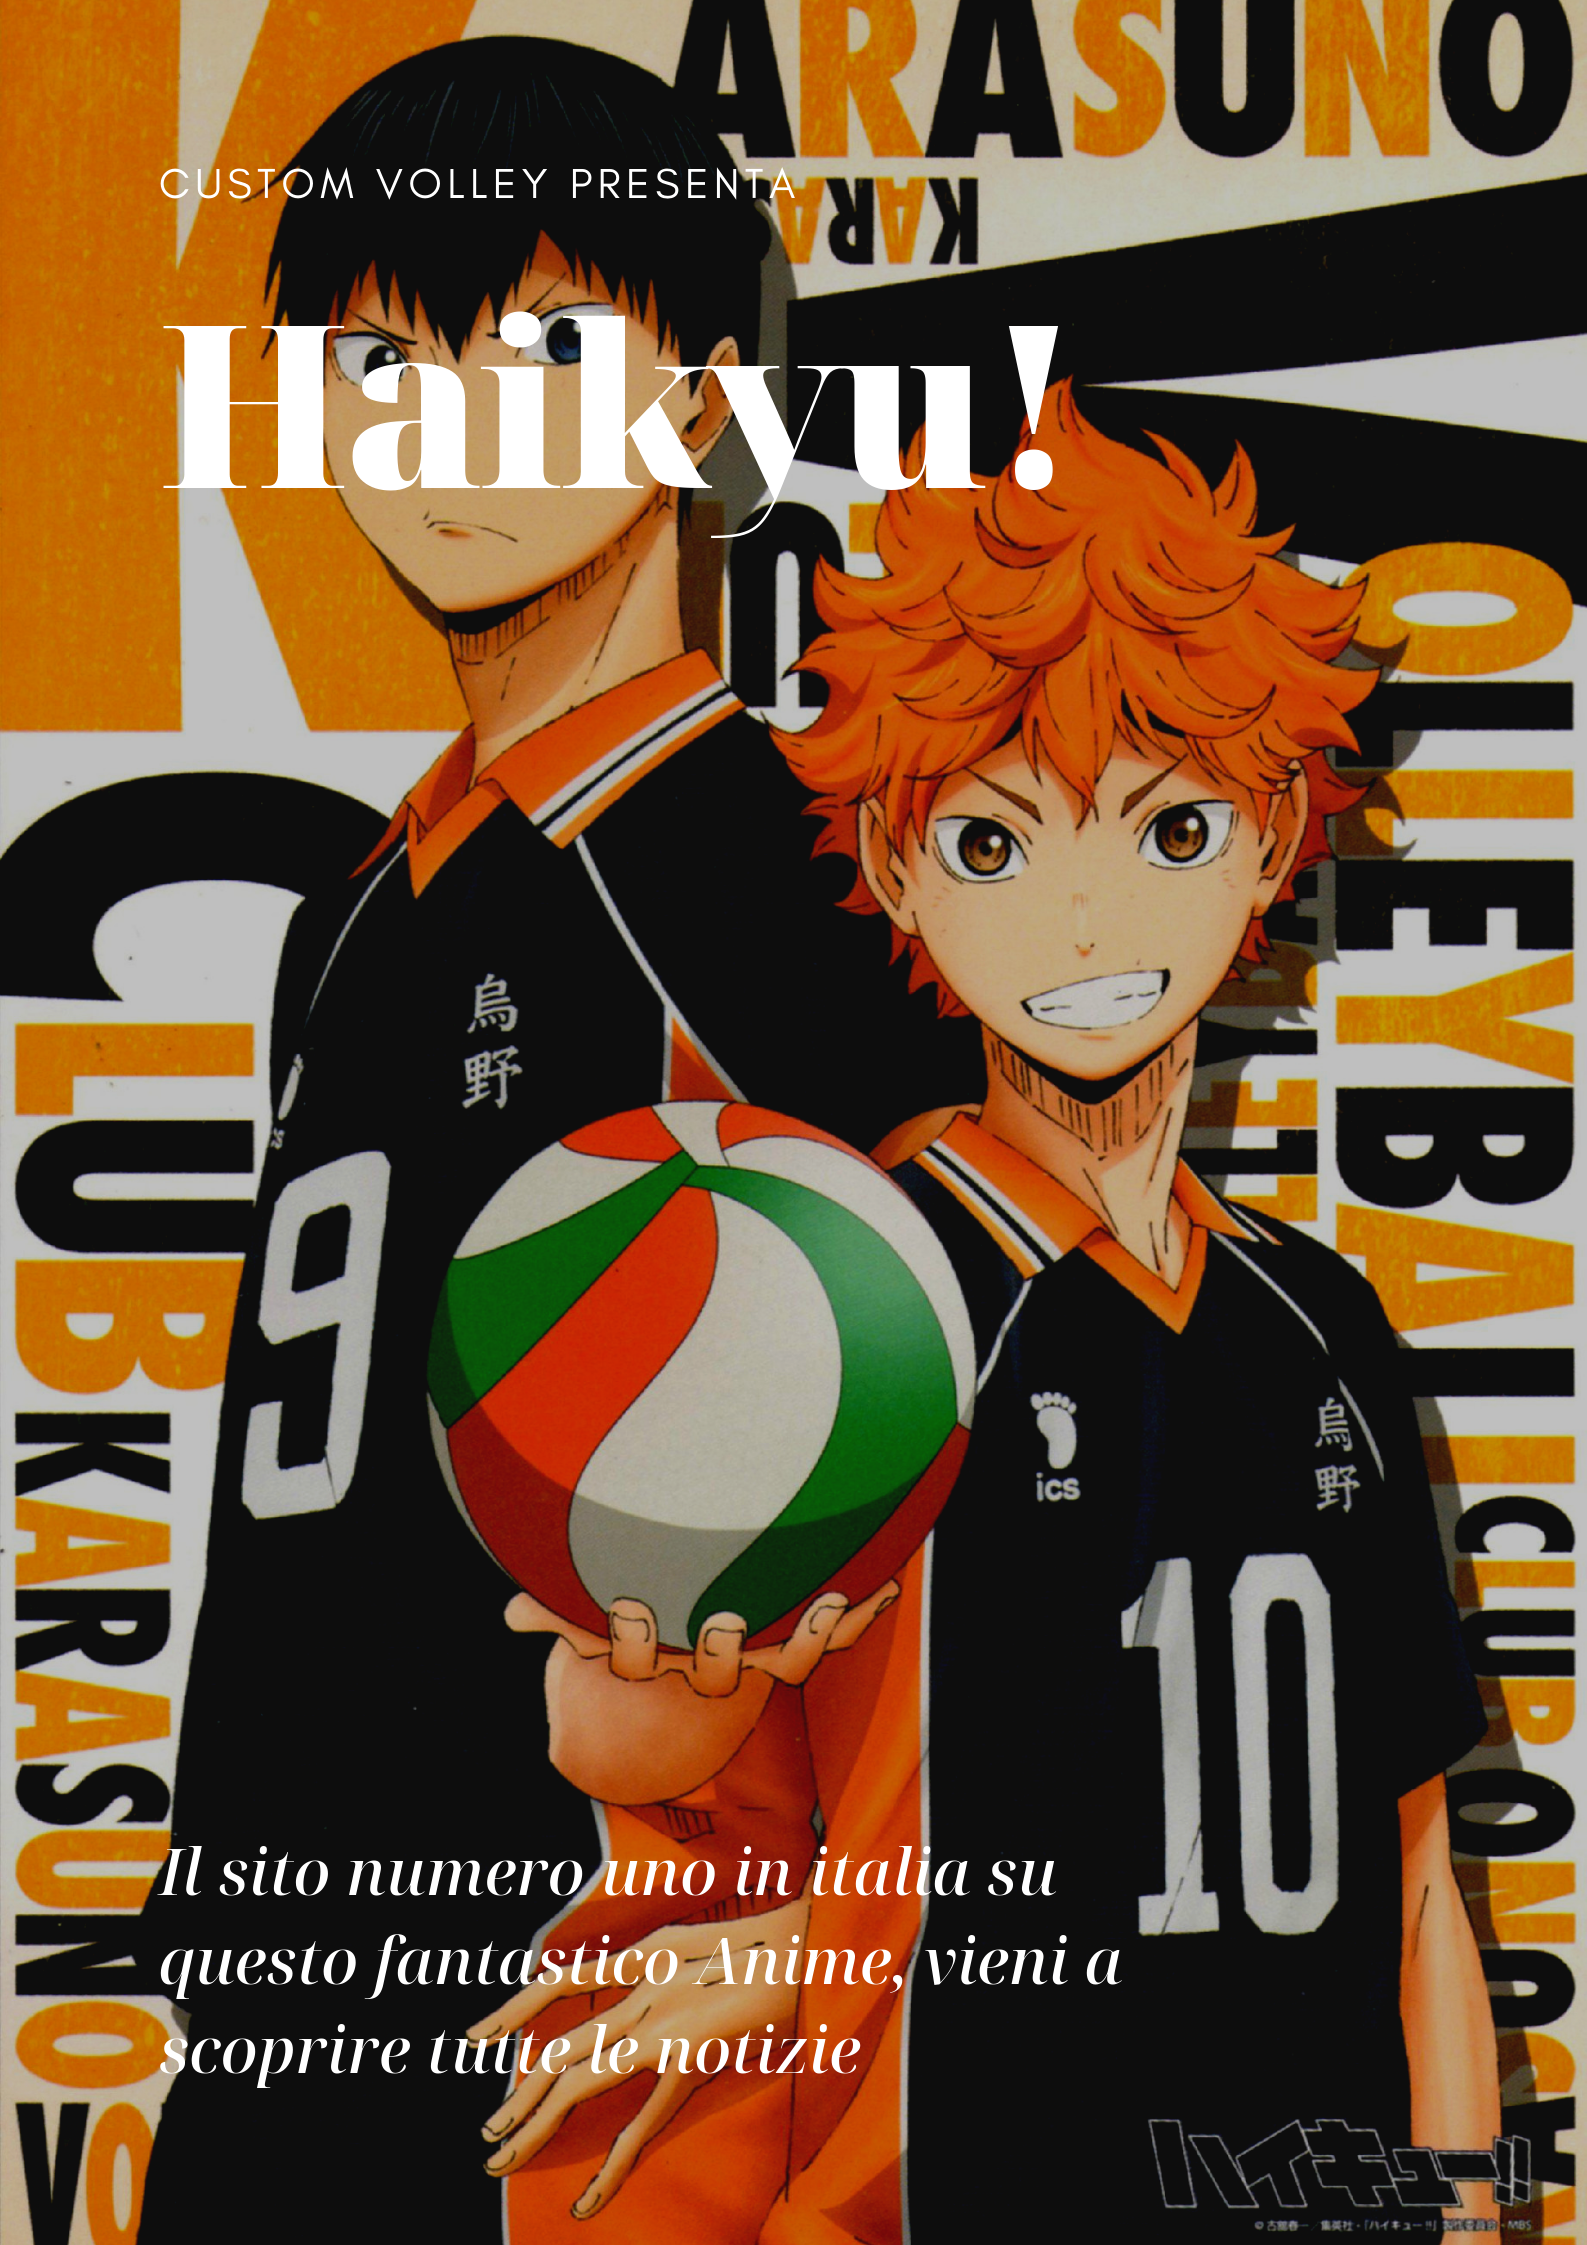 Haikyu, L'asso del volley